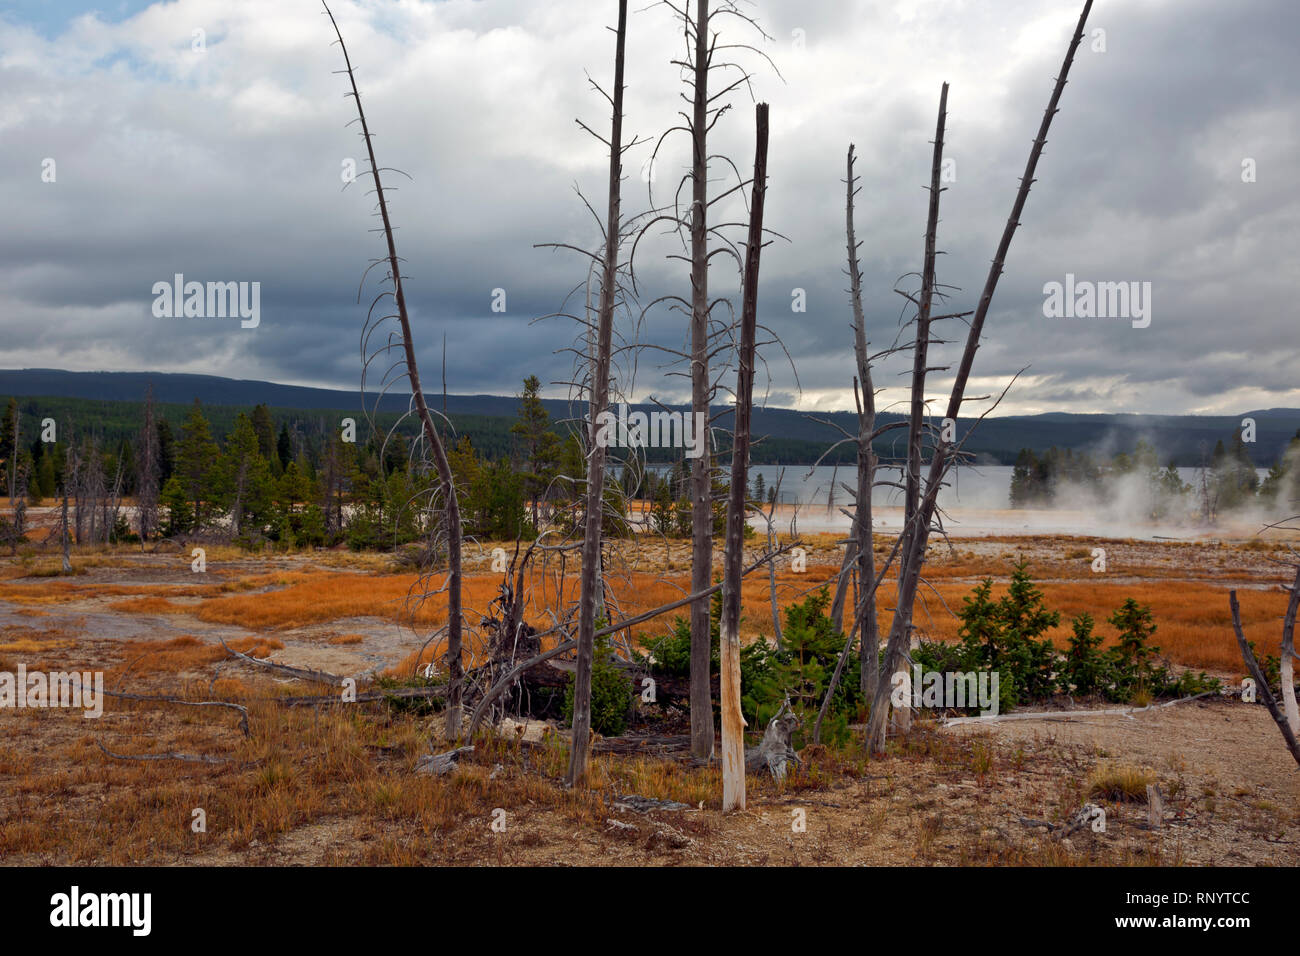 WYOMING - Trees killed by hotsprings runoff and new growth in  Rustic Group at Heart Lake Geyser Basin in the backcountry of Yellowstone NP. - Stock Image